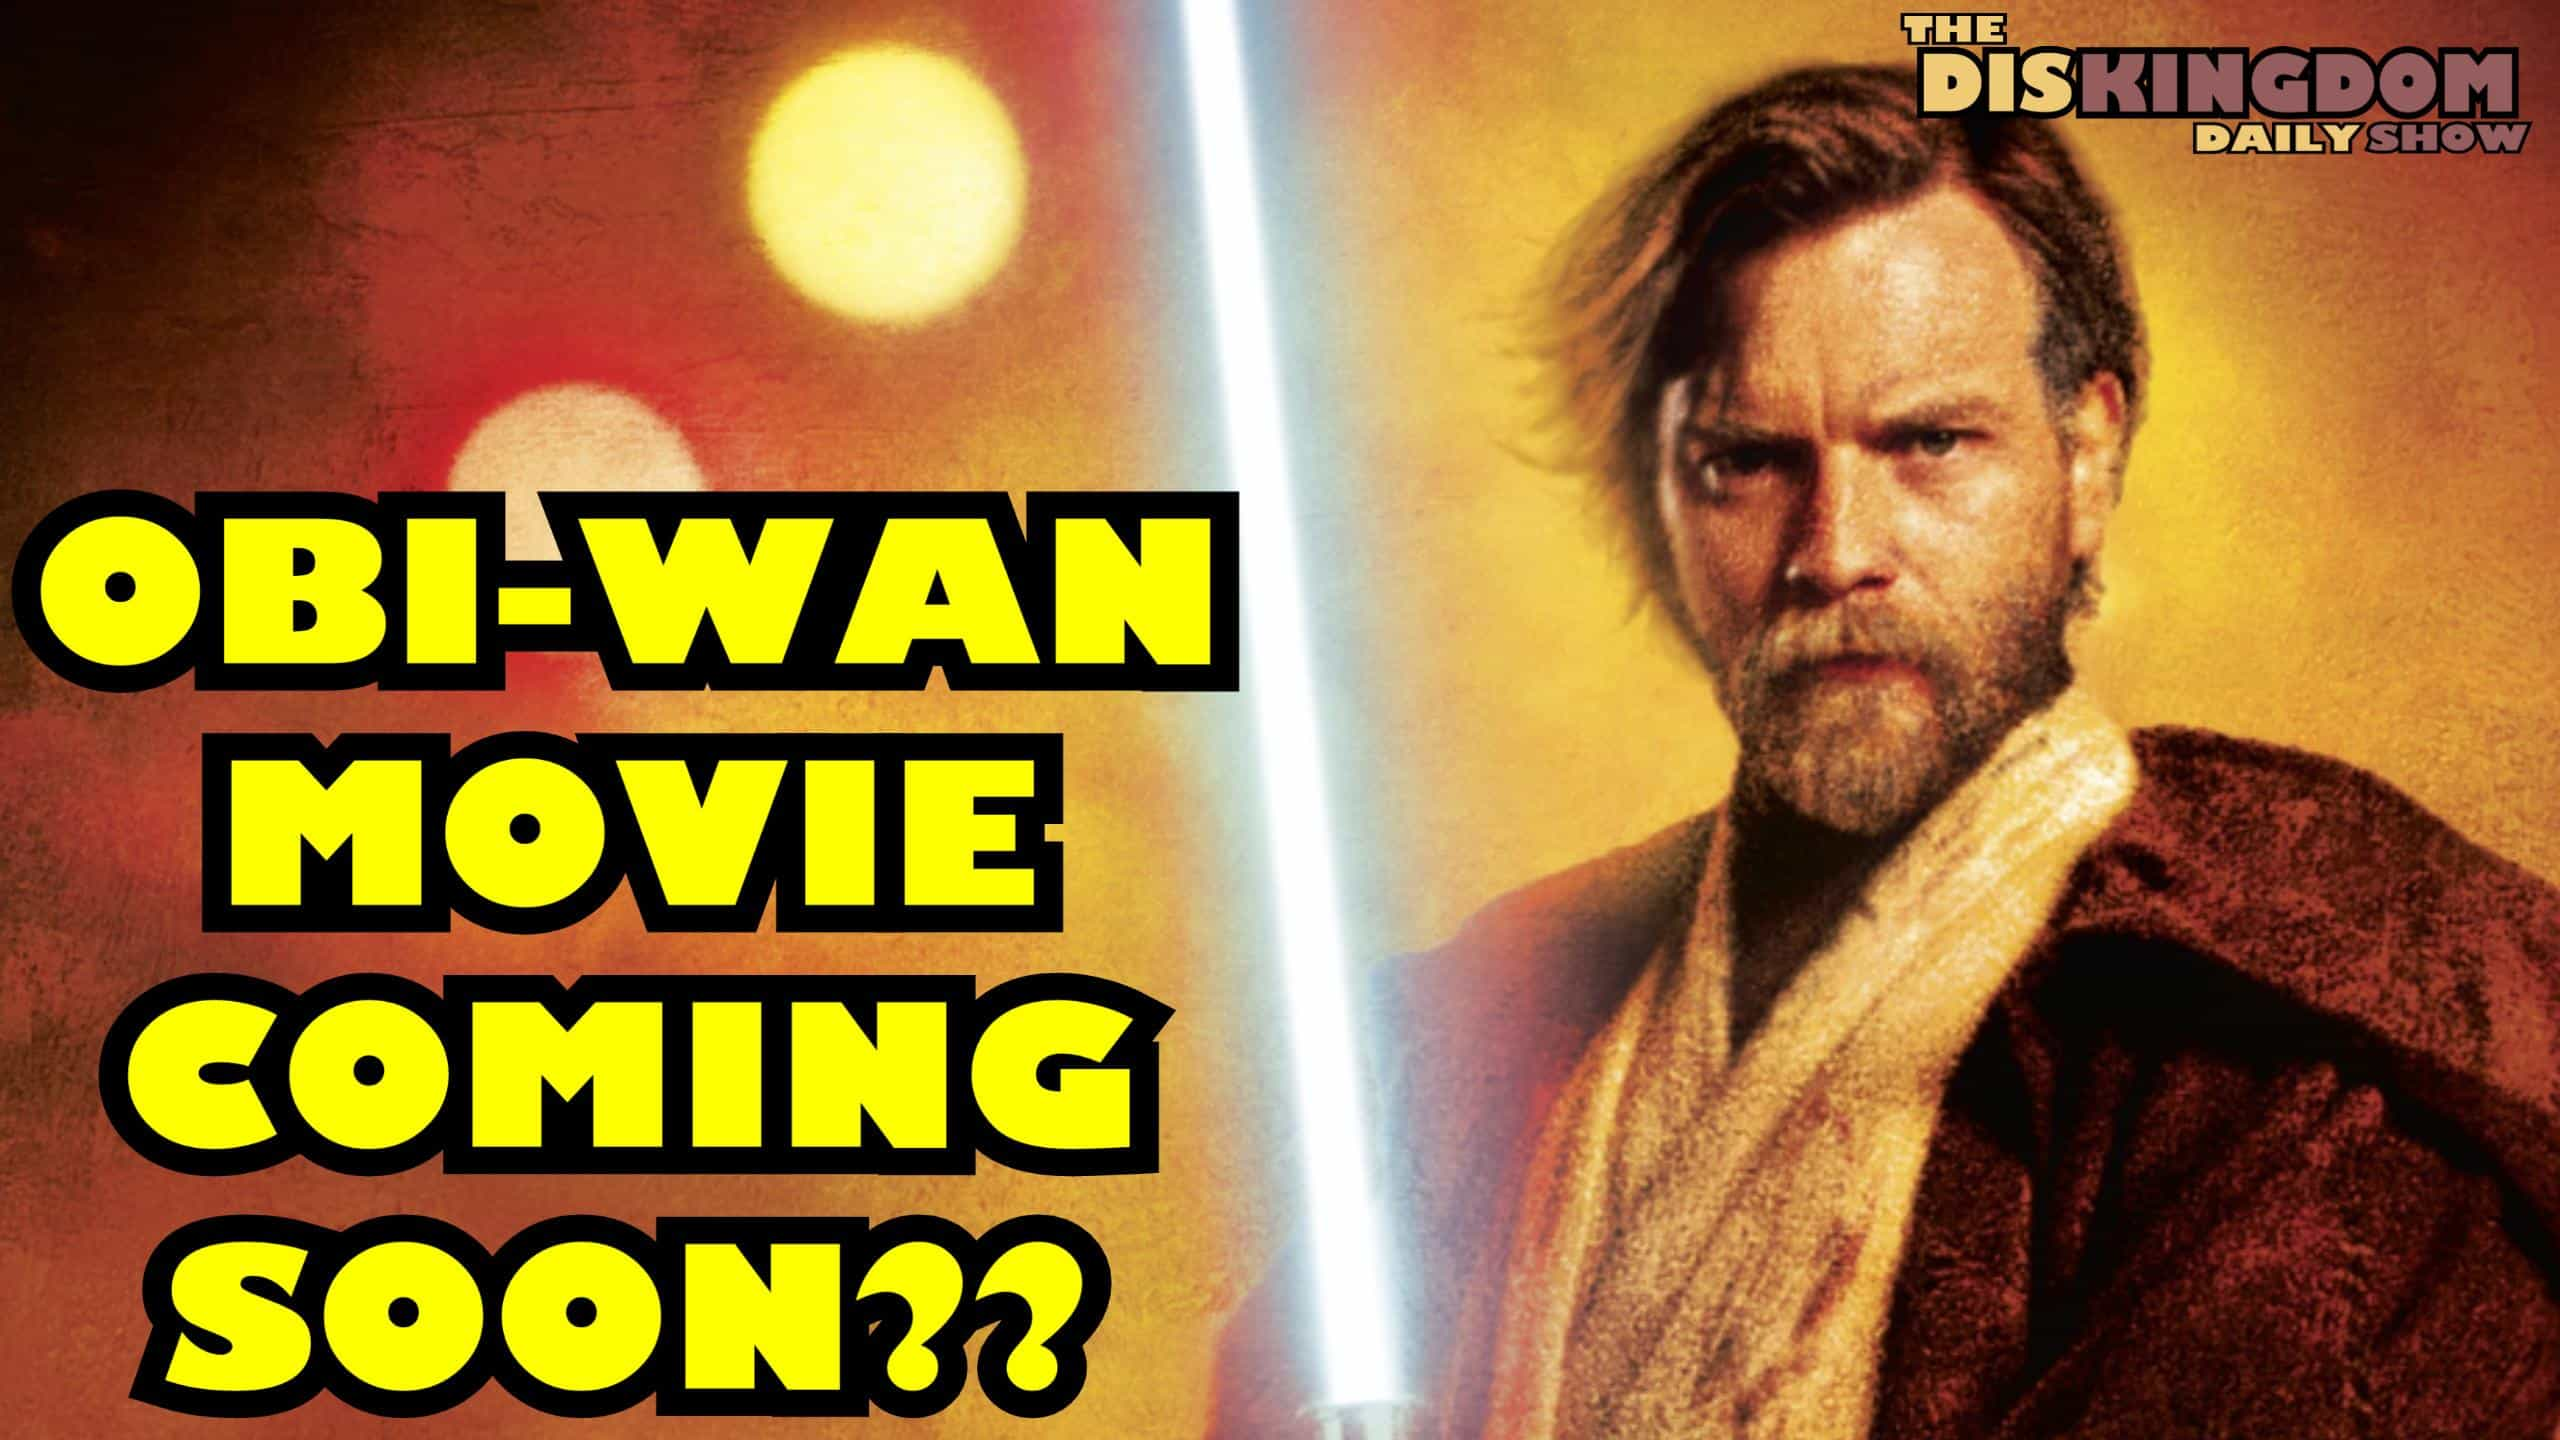 Star Wars Obi-Wan Kenobi Solo Movie Coming Soon